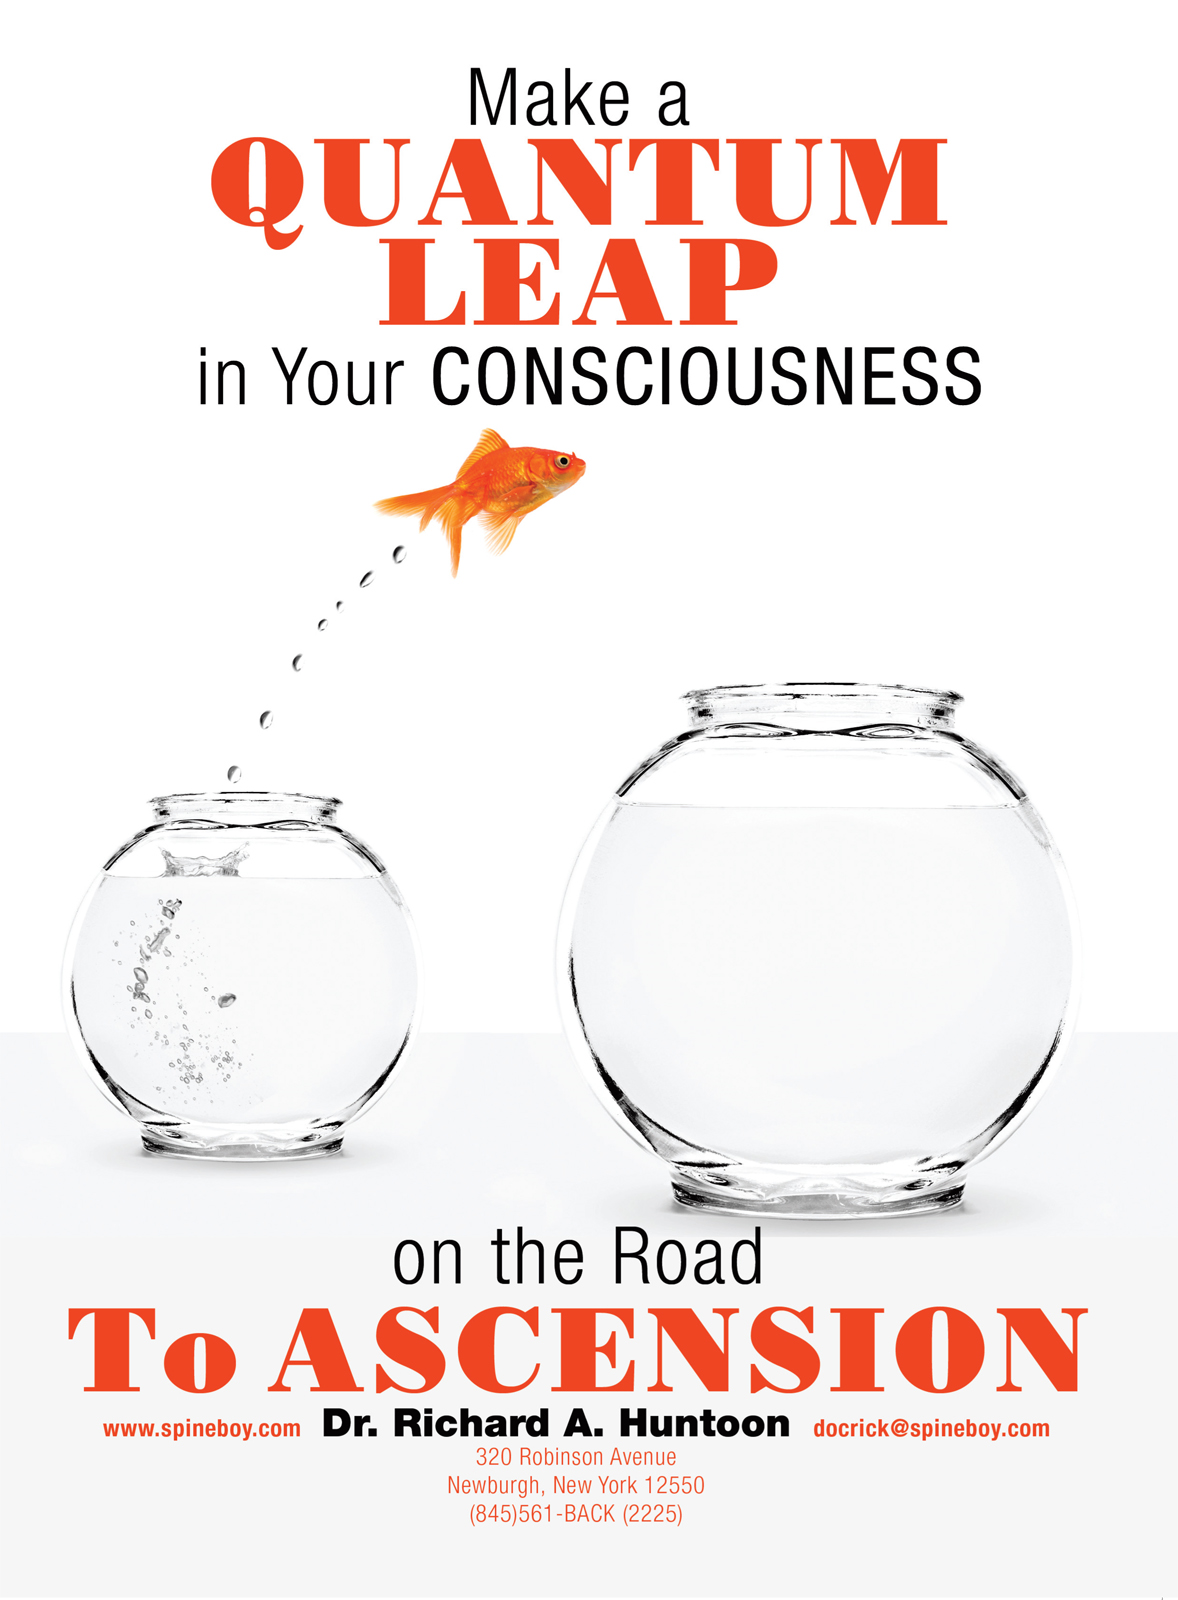 Make a Quantum Leap in Your Consciousness on the Road To Ascension By: Dr. Richard A. Huntoon